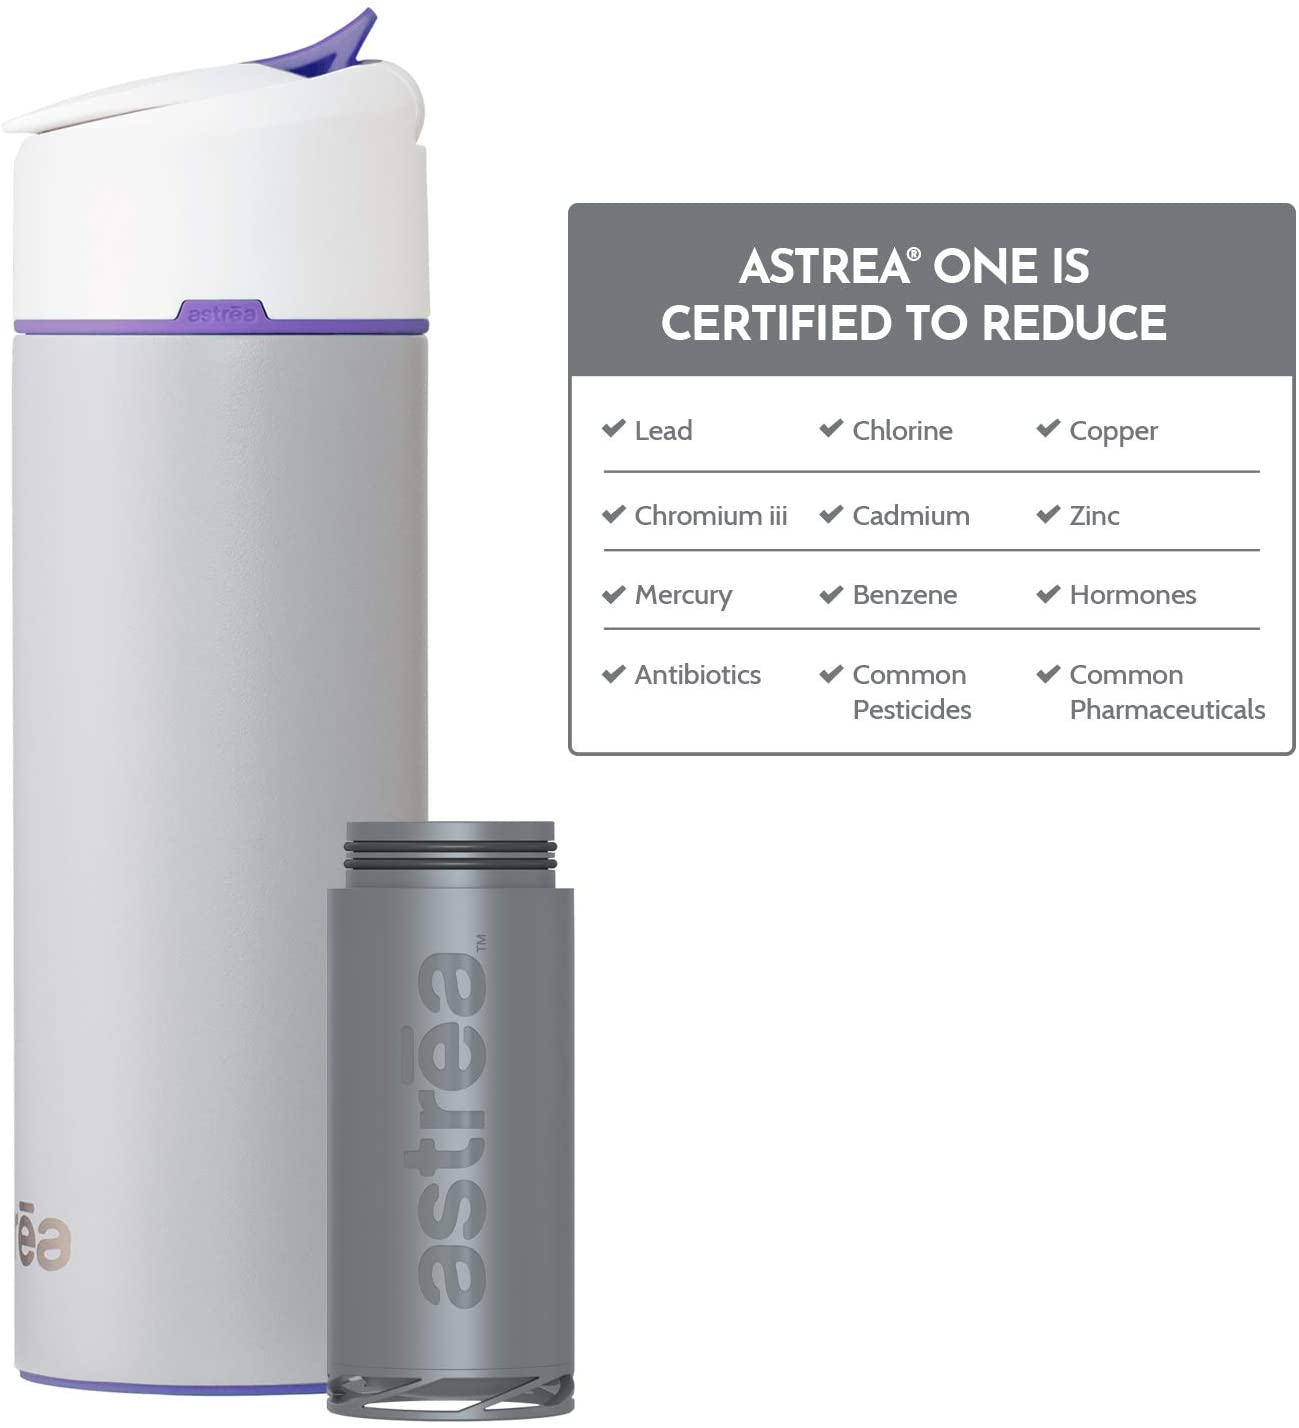 astrea ONE Premium Stainless Steel Filtered Water Bottle, 20 Oz, Meets NSF Standards 42, 53, and 401, Independently Certified, Grey/Purple (New & Improved)